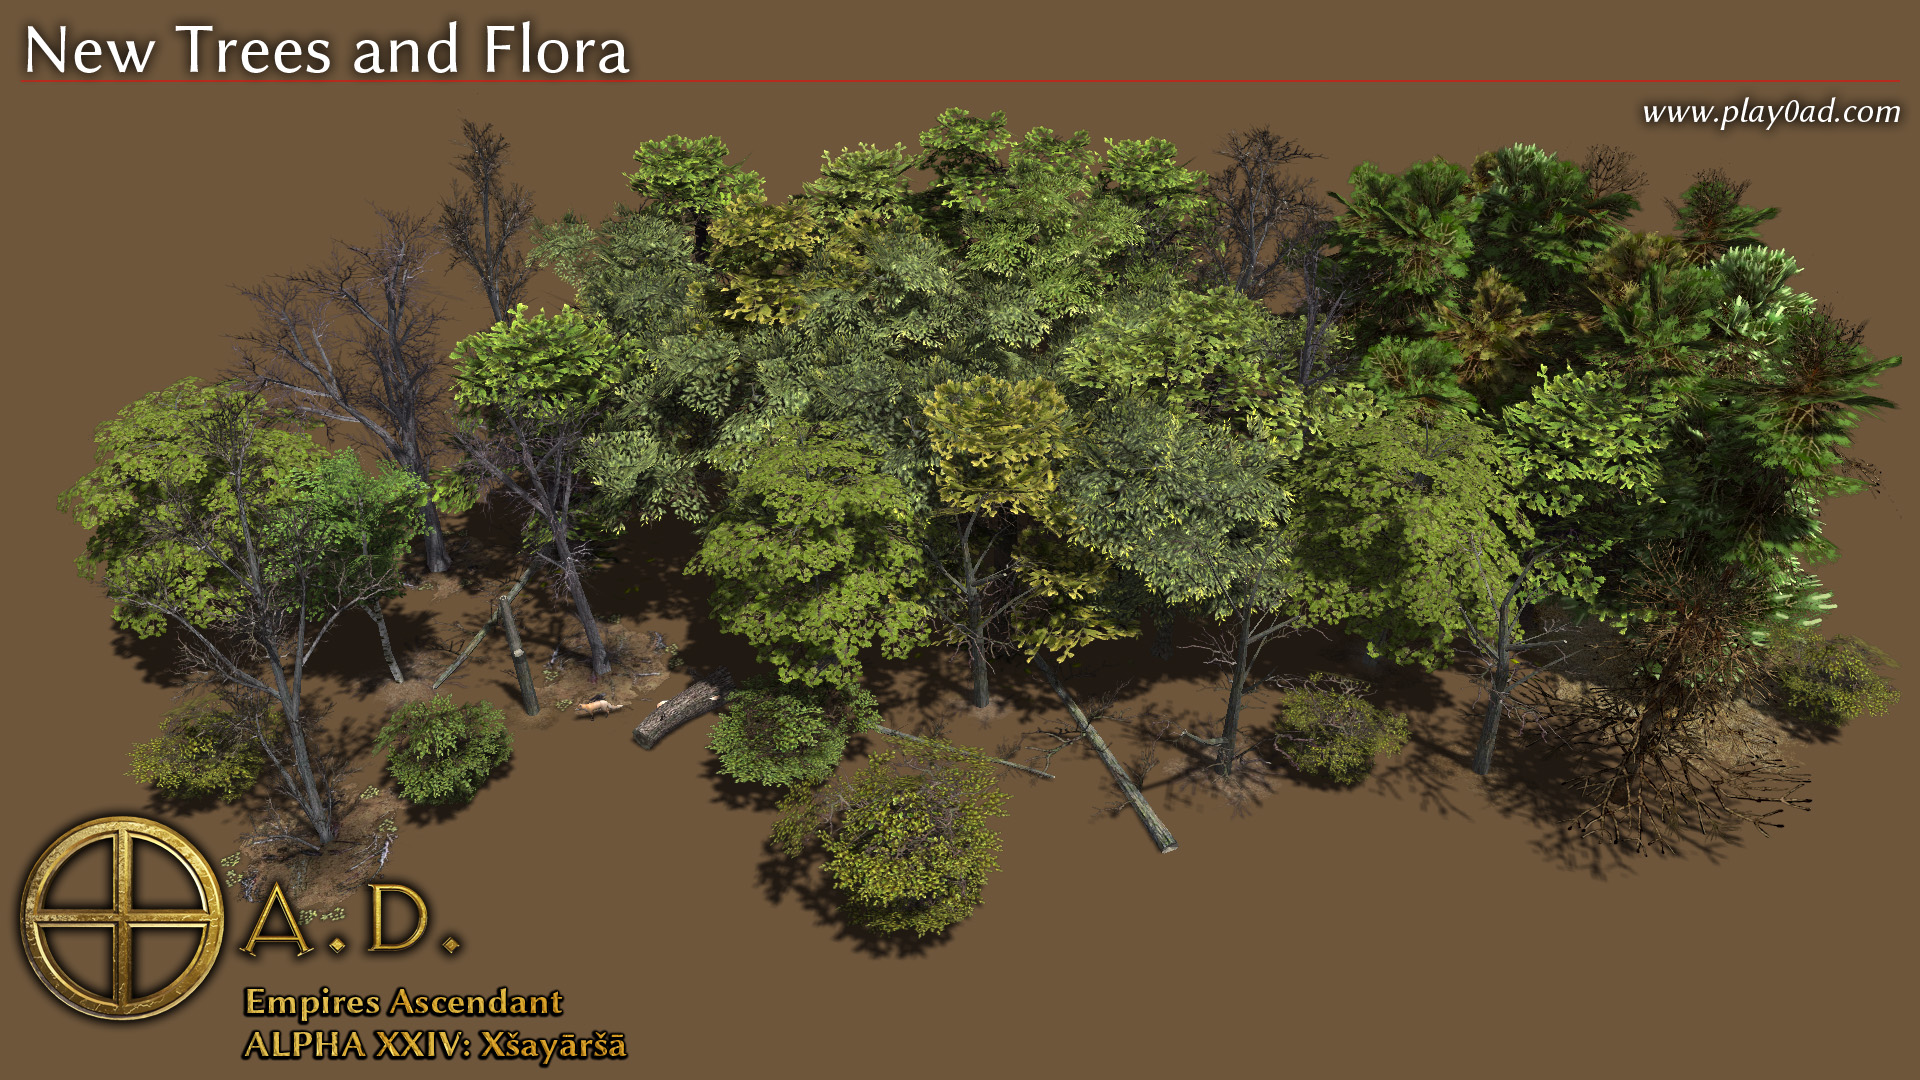 New Trees and Flora